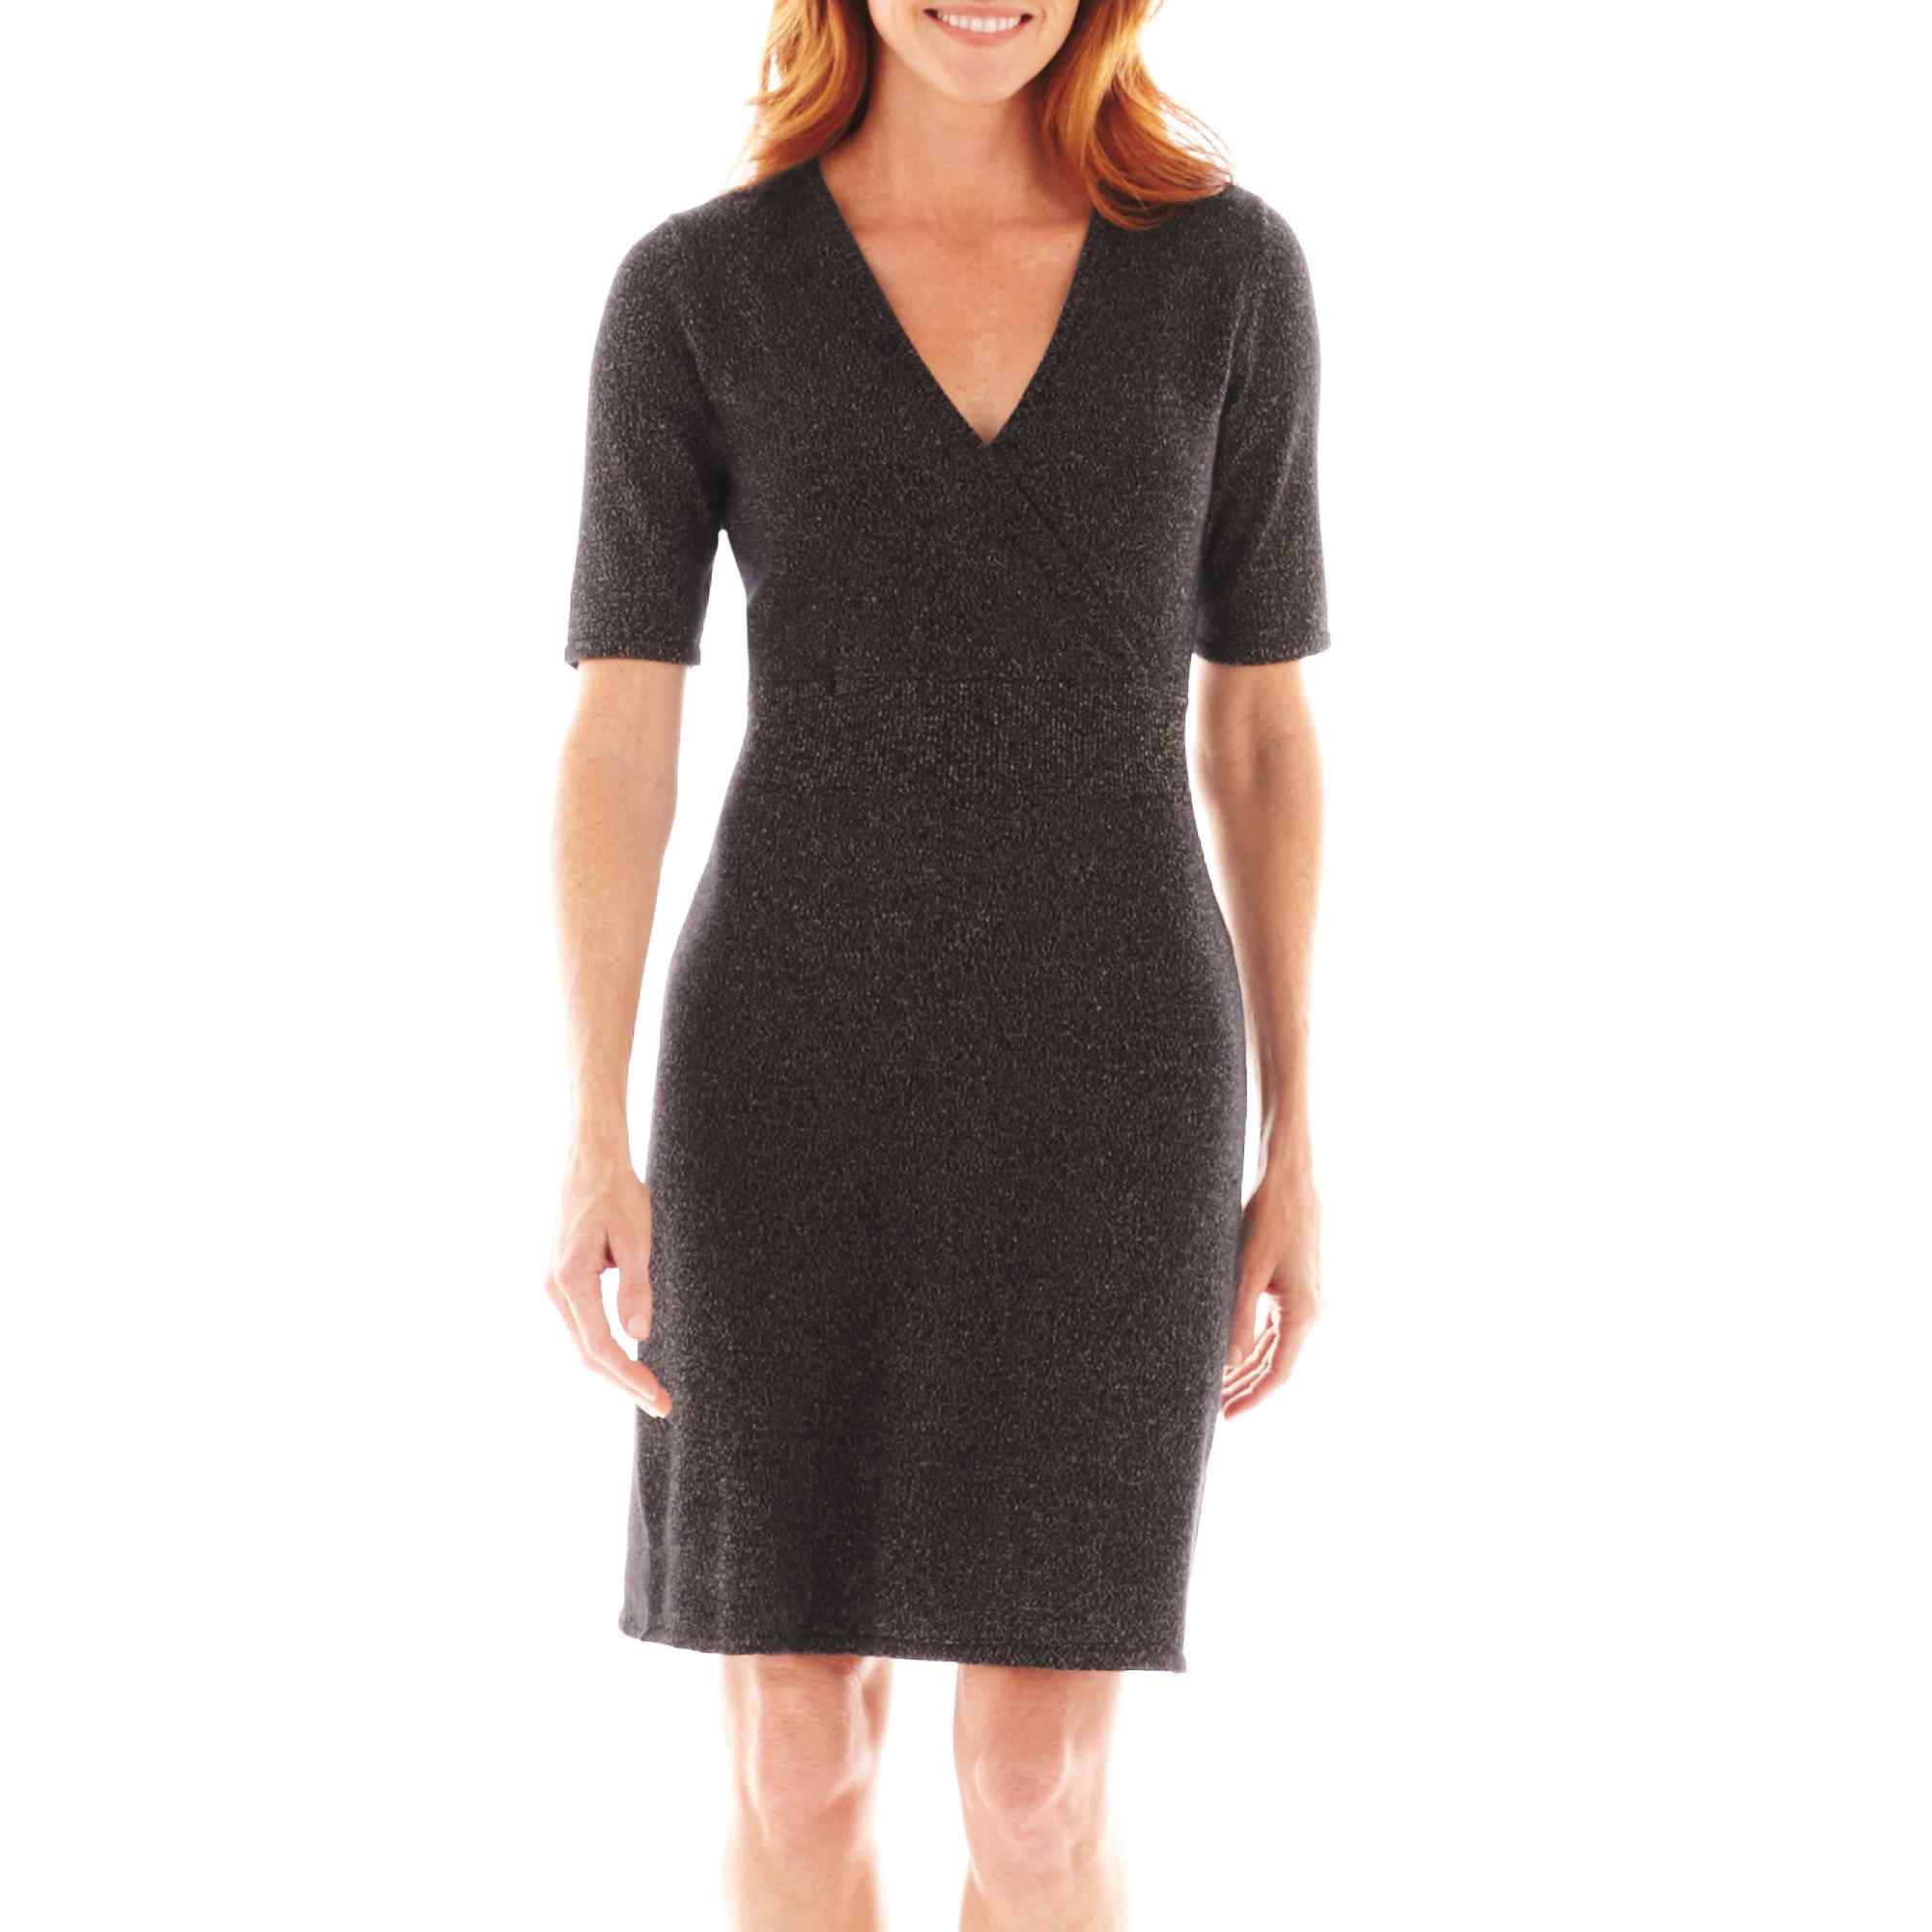 Liz Claiborne Short-Sleeve Surplice Sweater Dress - Tall